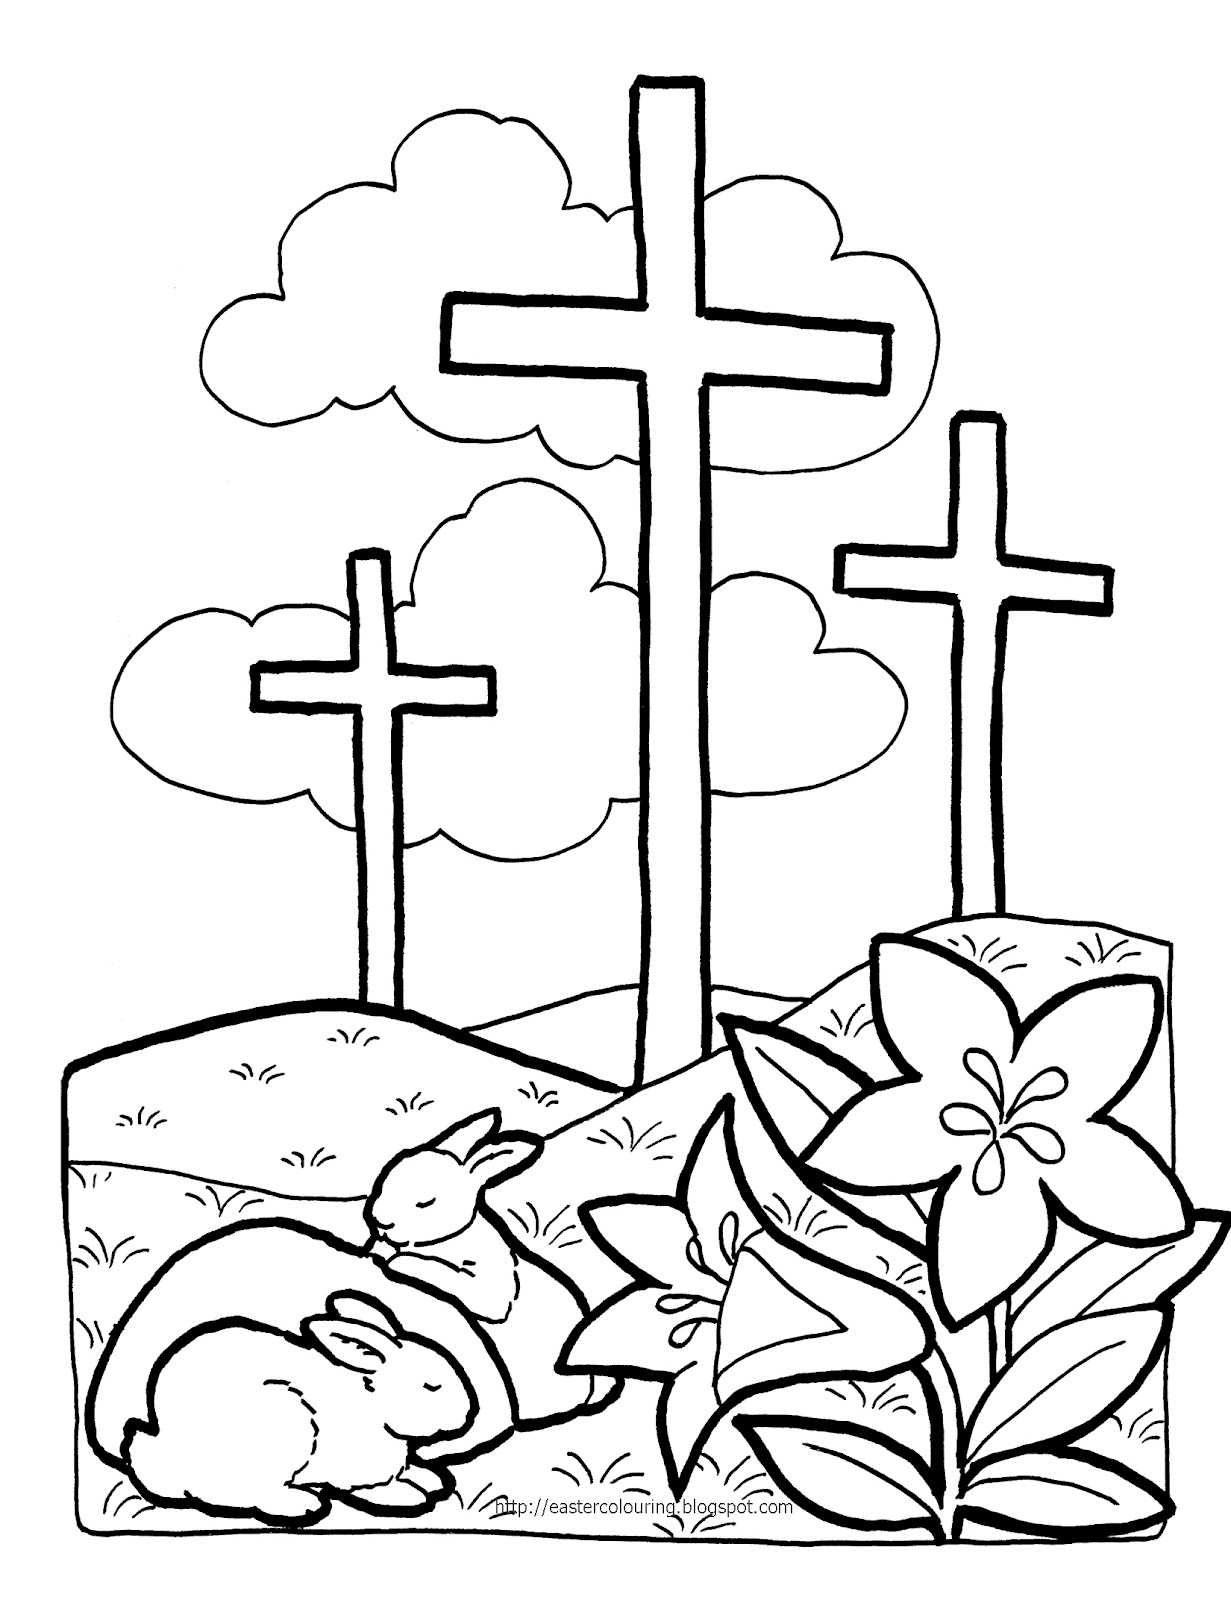 Free printable coloring pages for kids bible - Printable Christian Coloring Pages